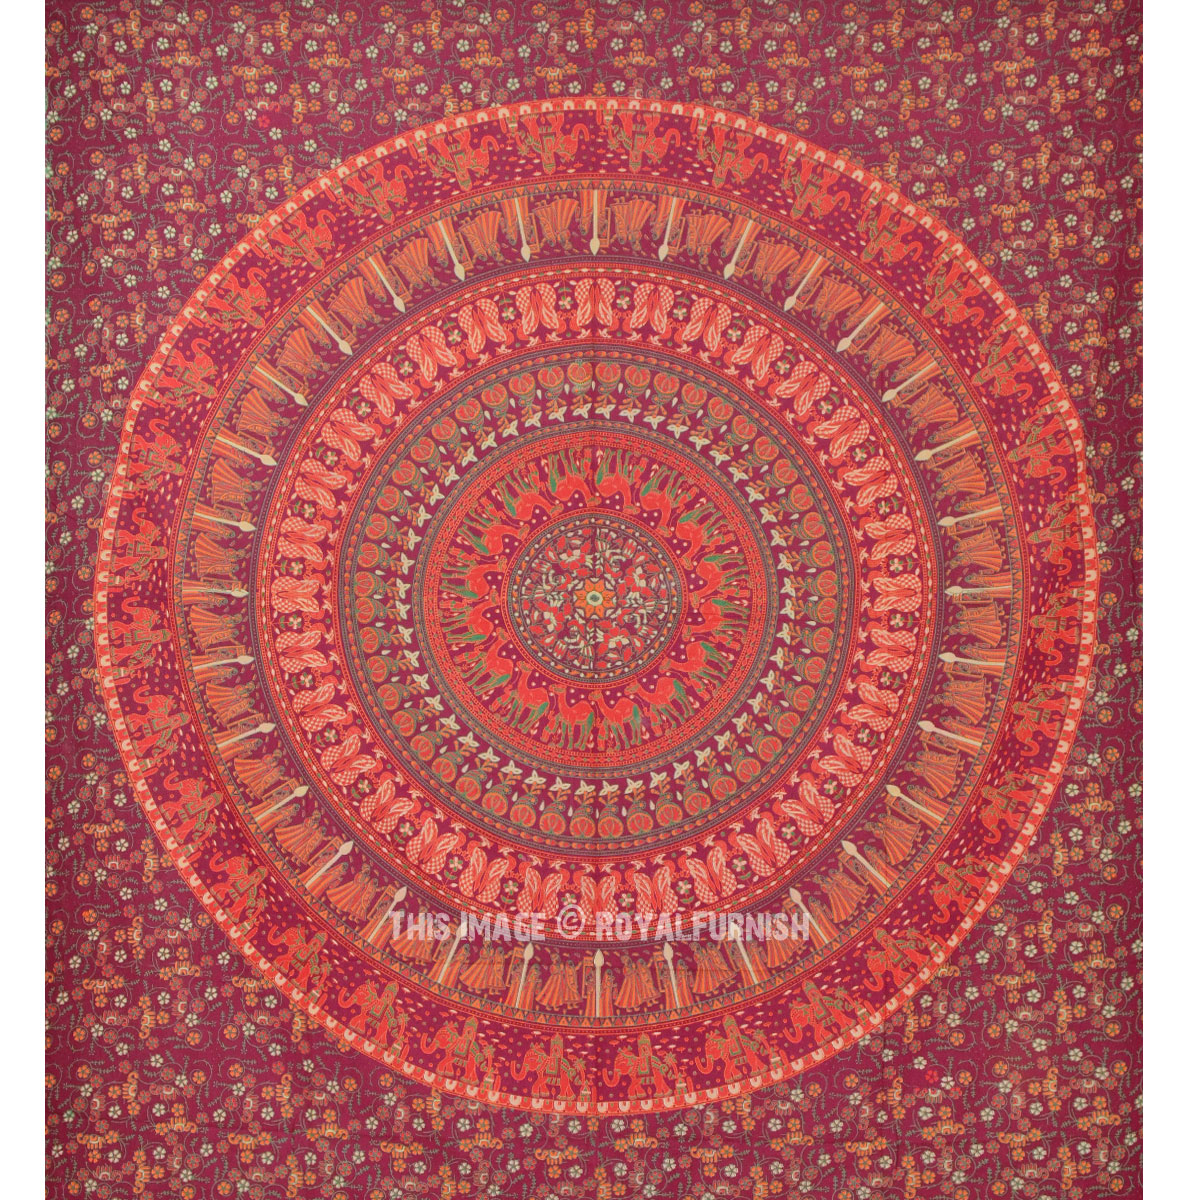 Large Maroon Animal Birds Boho Style Mandala Circle